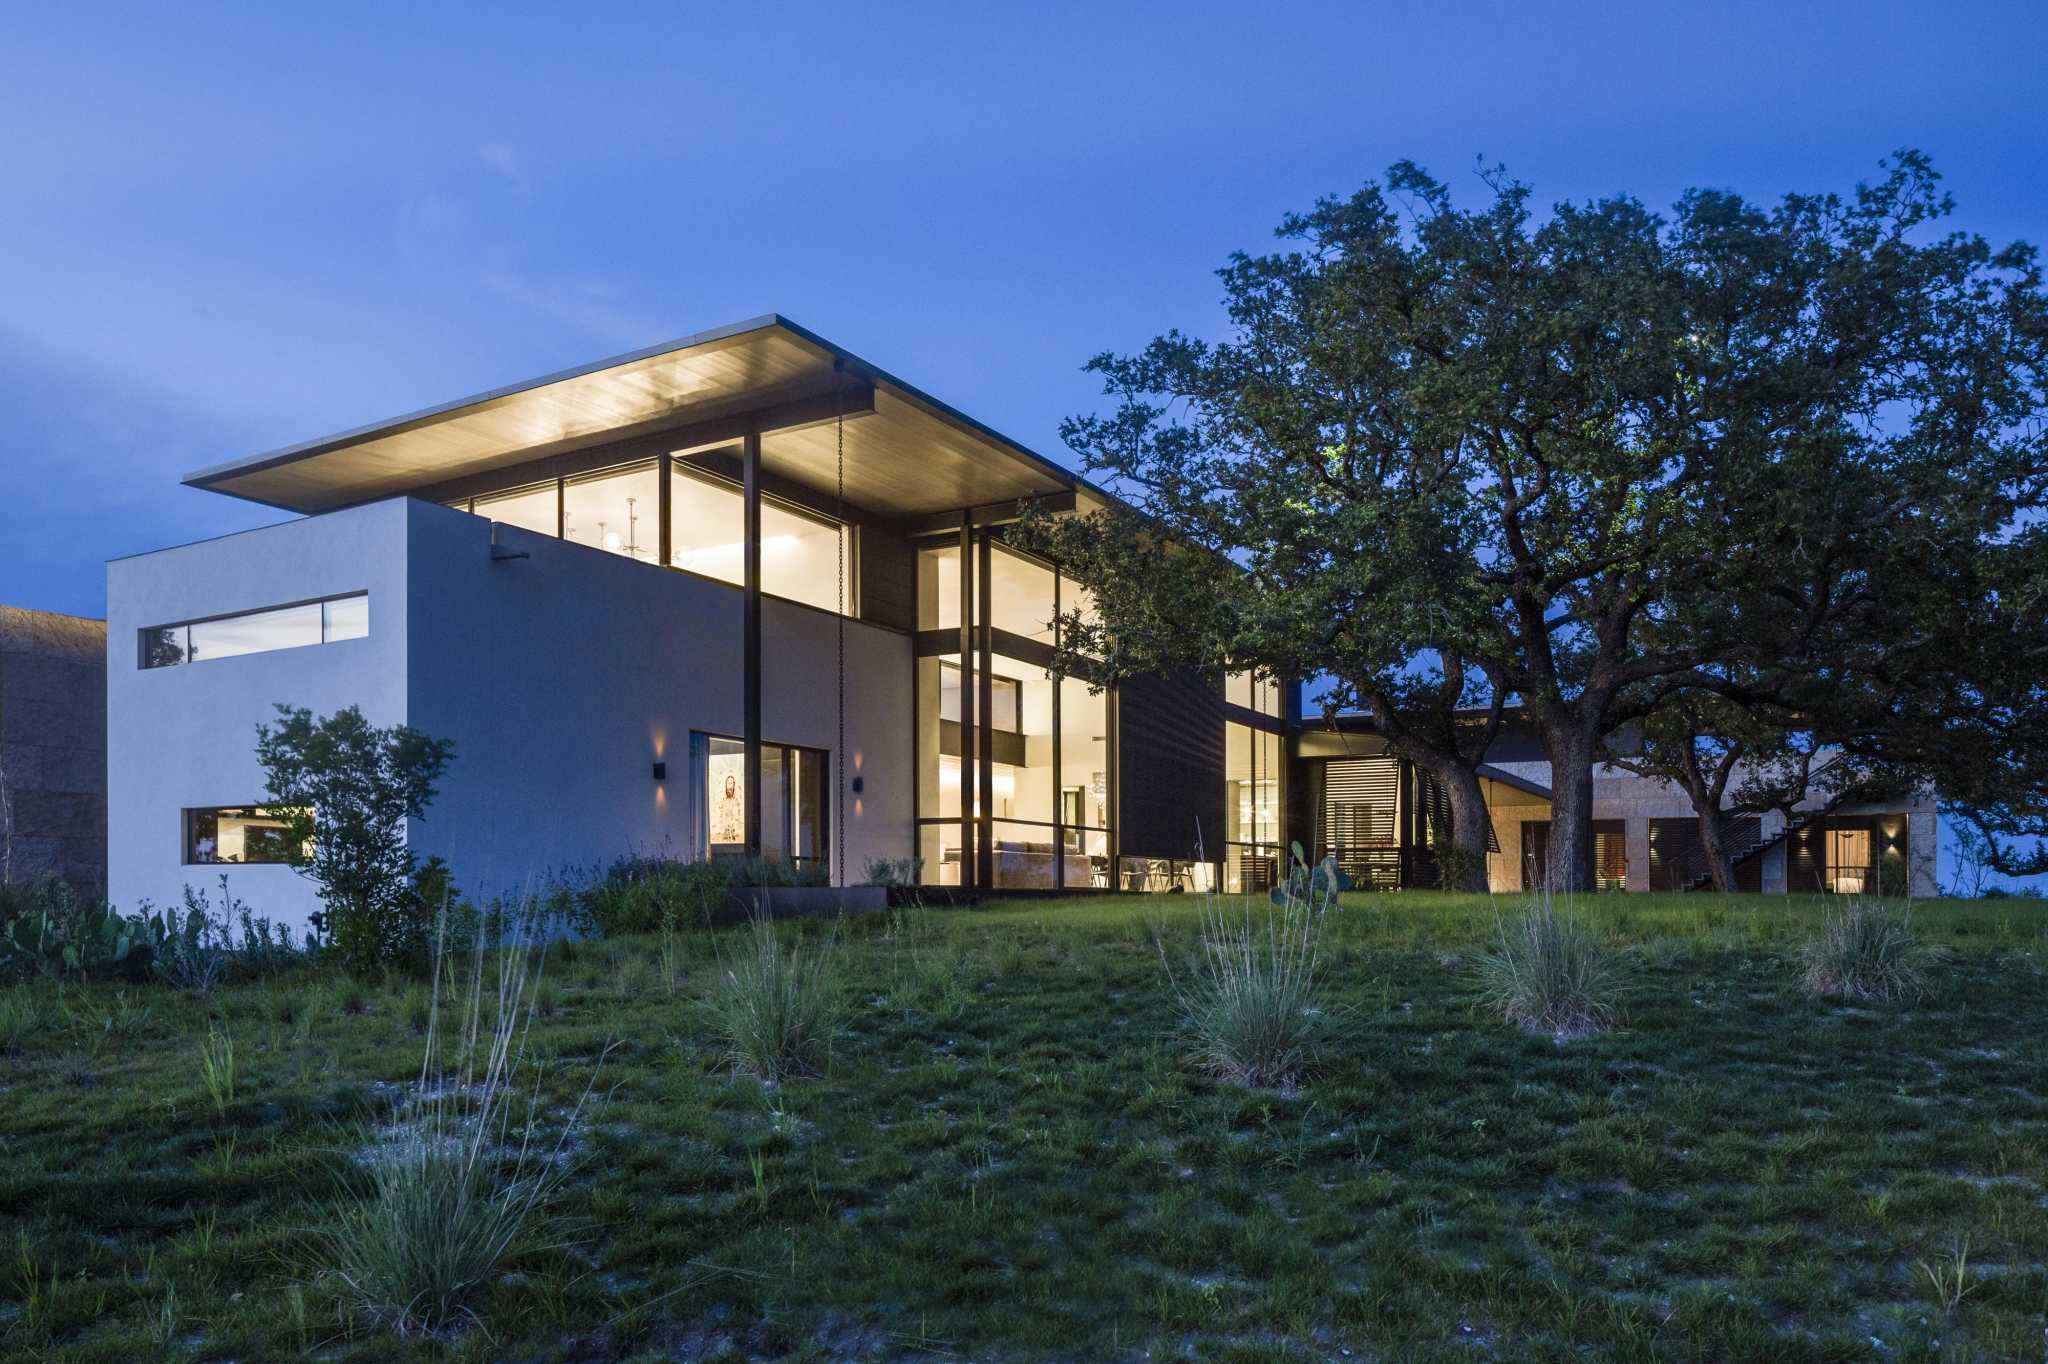 This modern West Texas ranch home is drawing some major attention